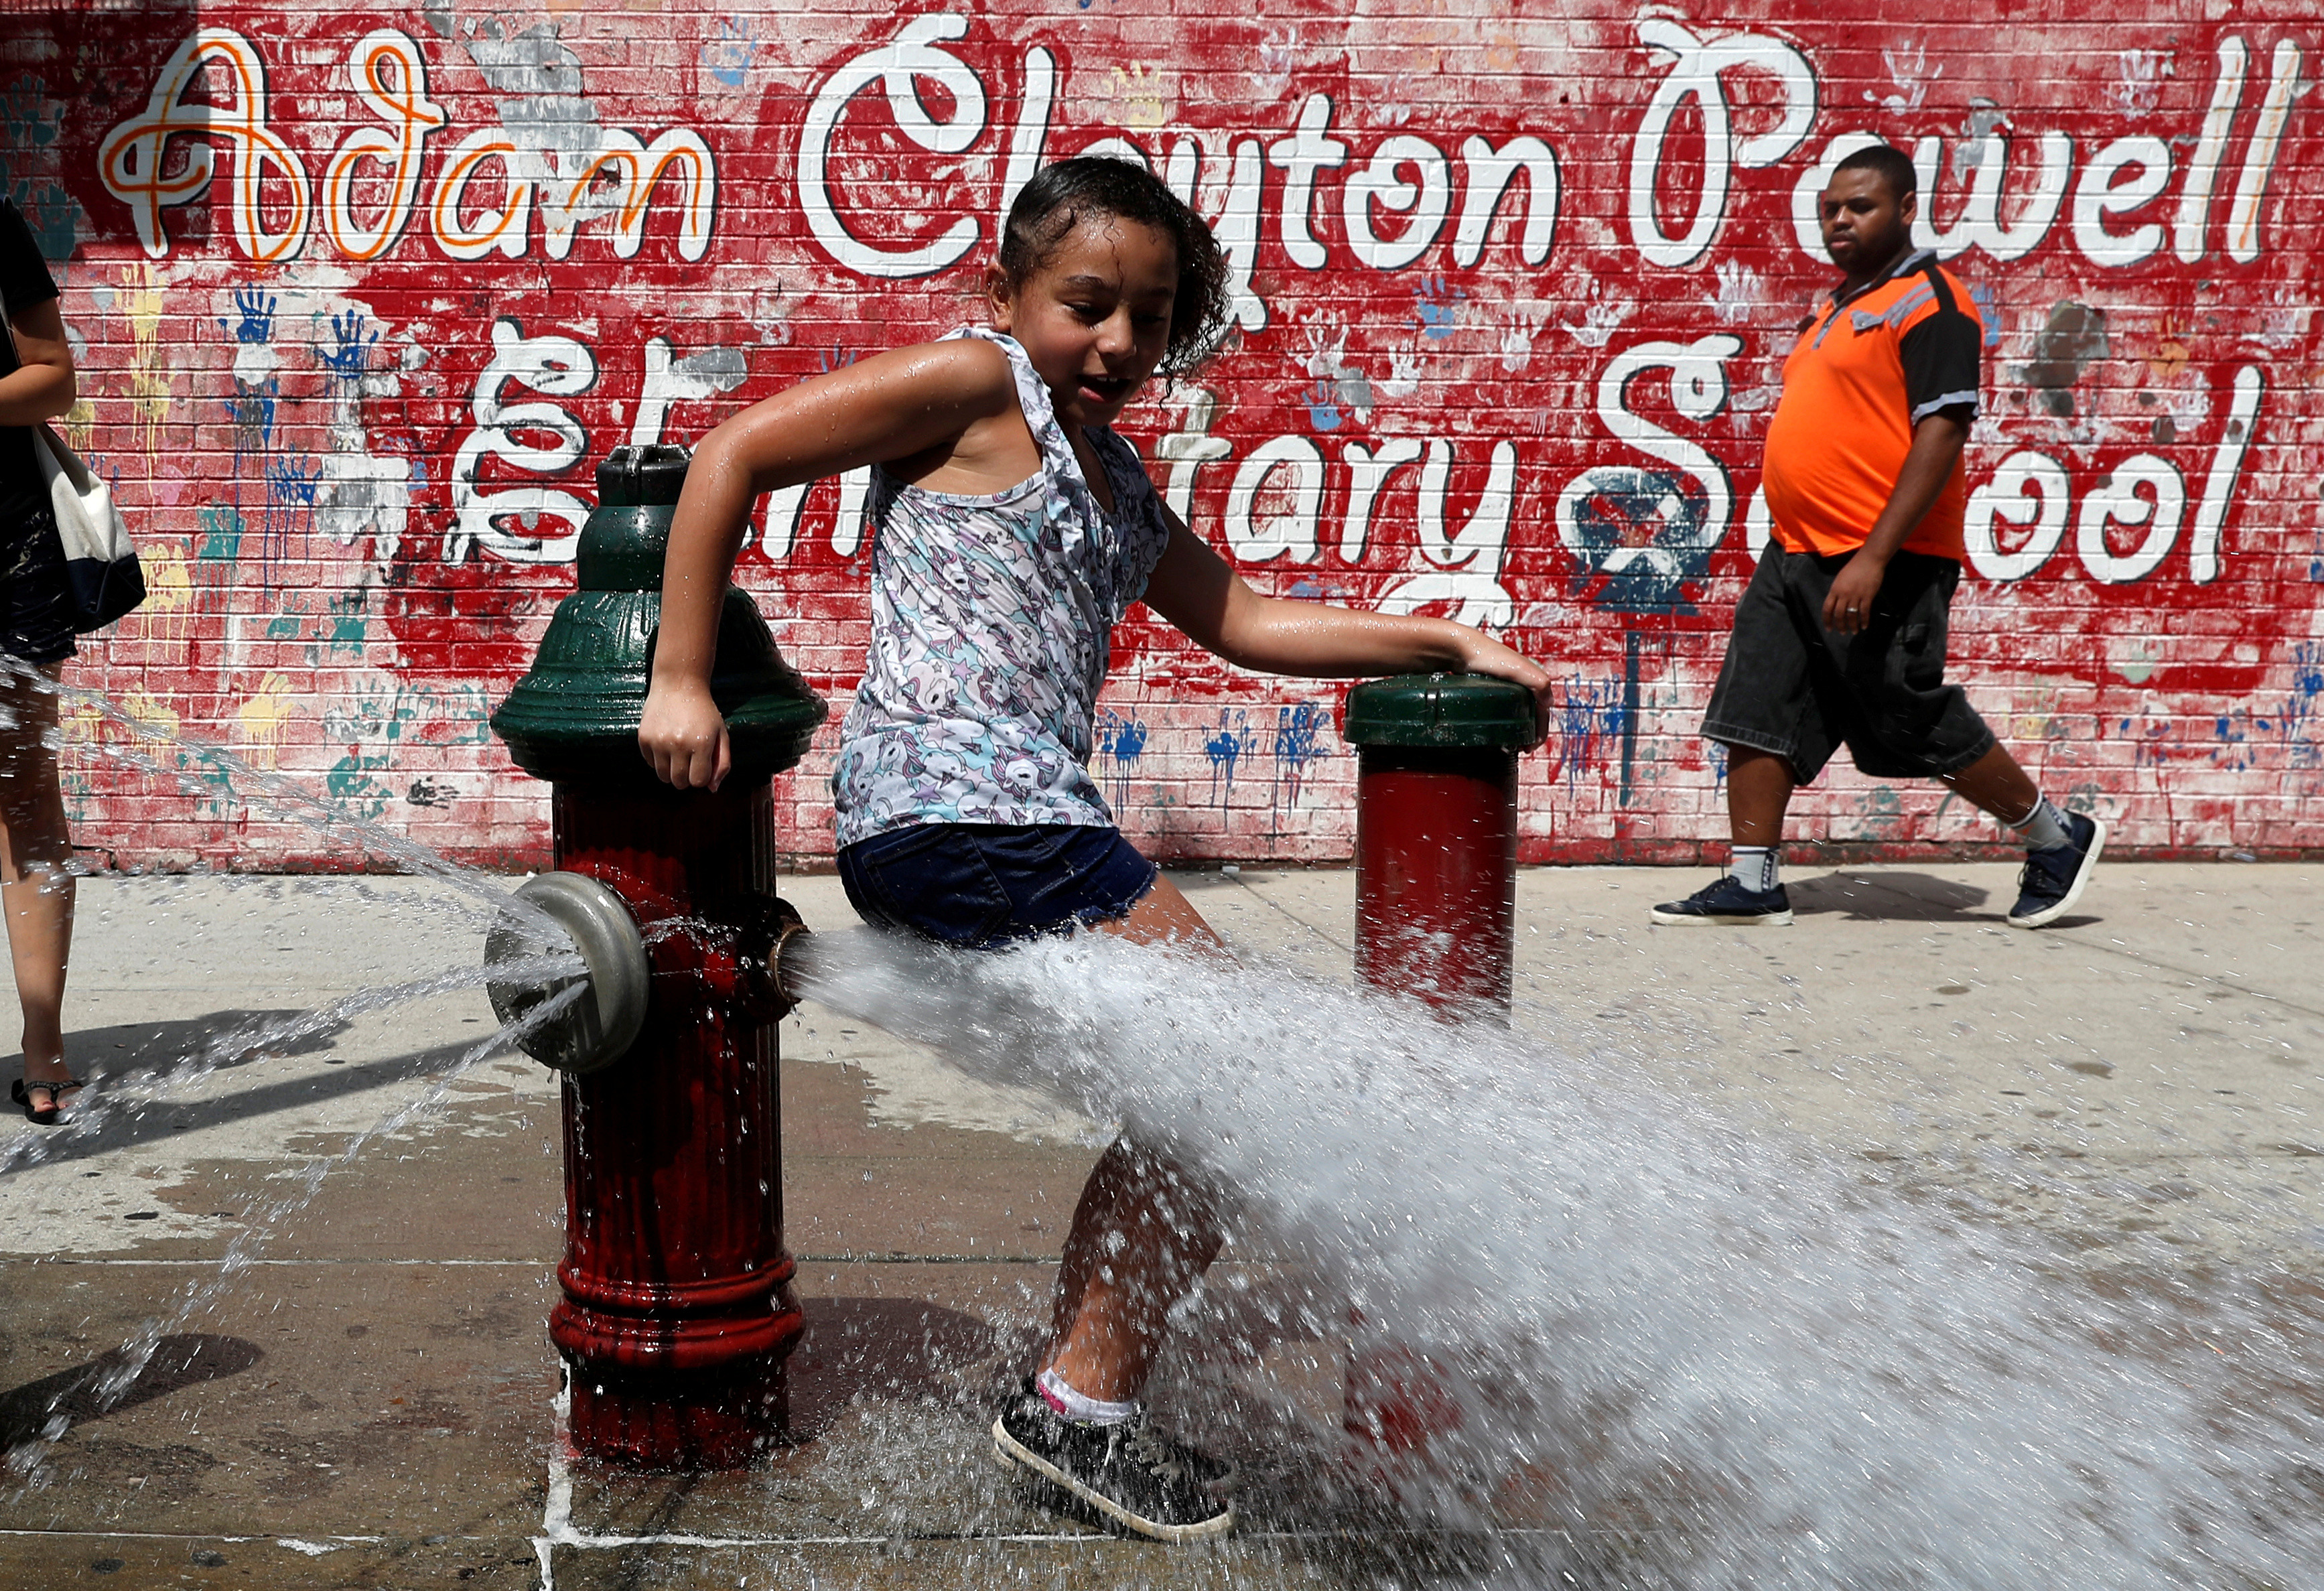 A girl cools off from the heat in water from an open fire hydrant in the Washington Heights section of upper Manhattan in New York City, New York, U.S., July 19, 2019. REUTERS/Mike Segar     TPX IMAGES OF THE DAY - RC12AF9CC5D0